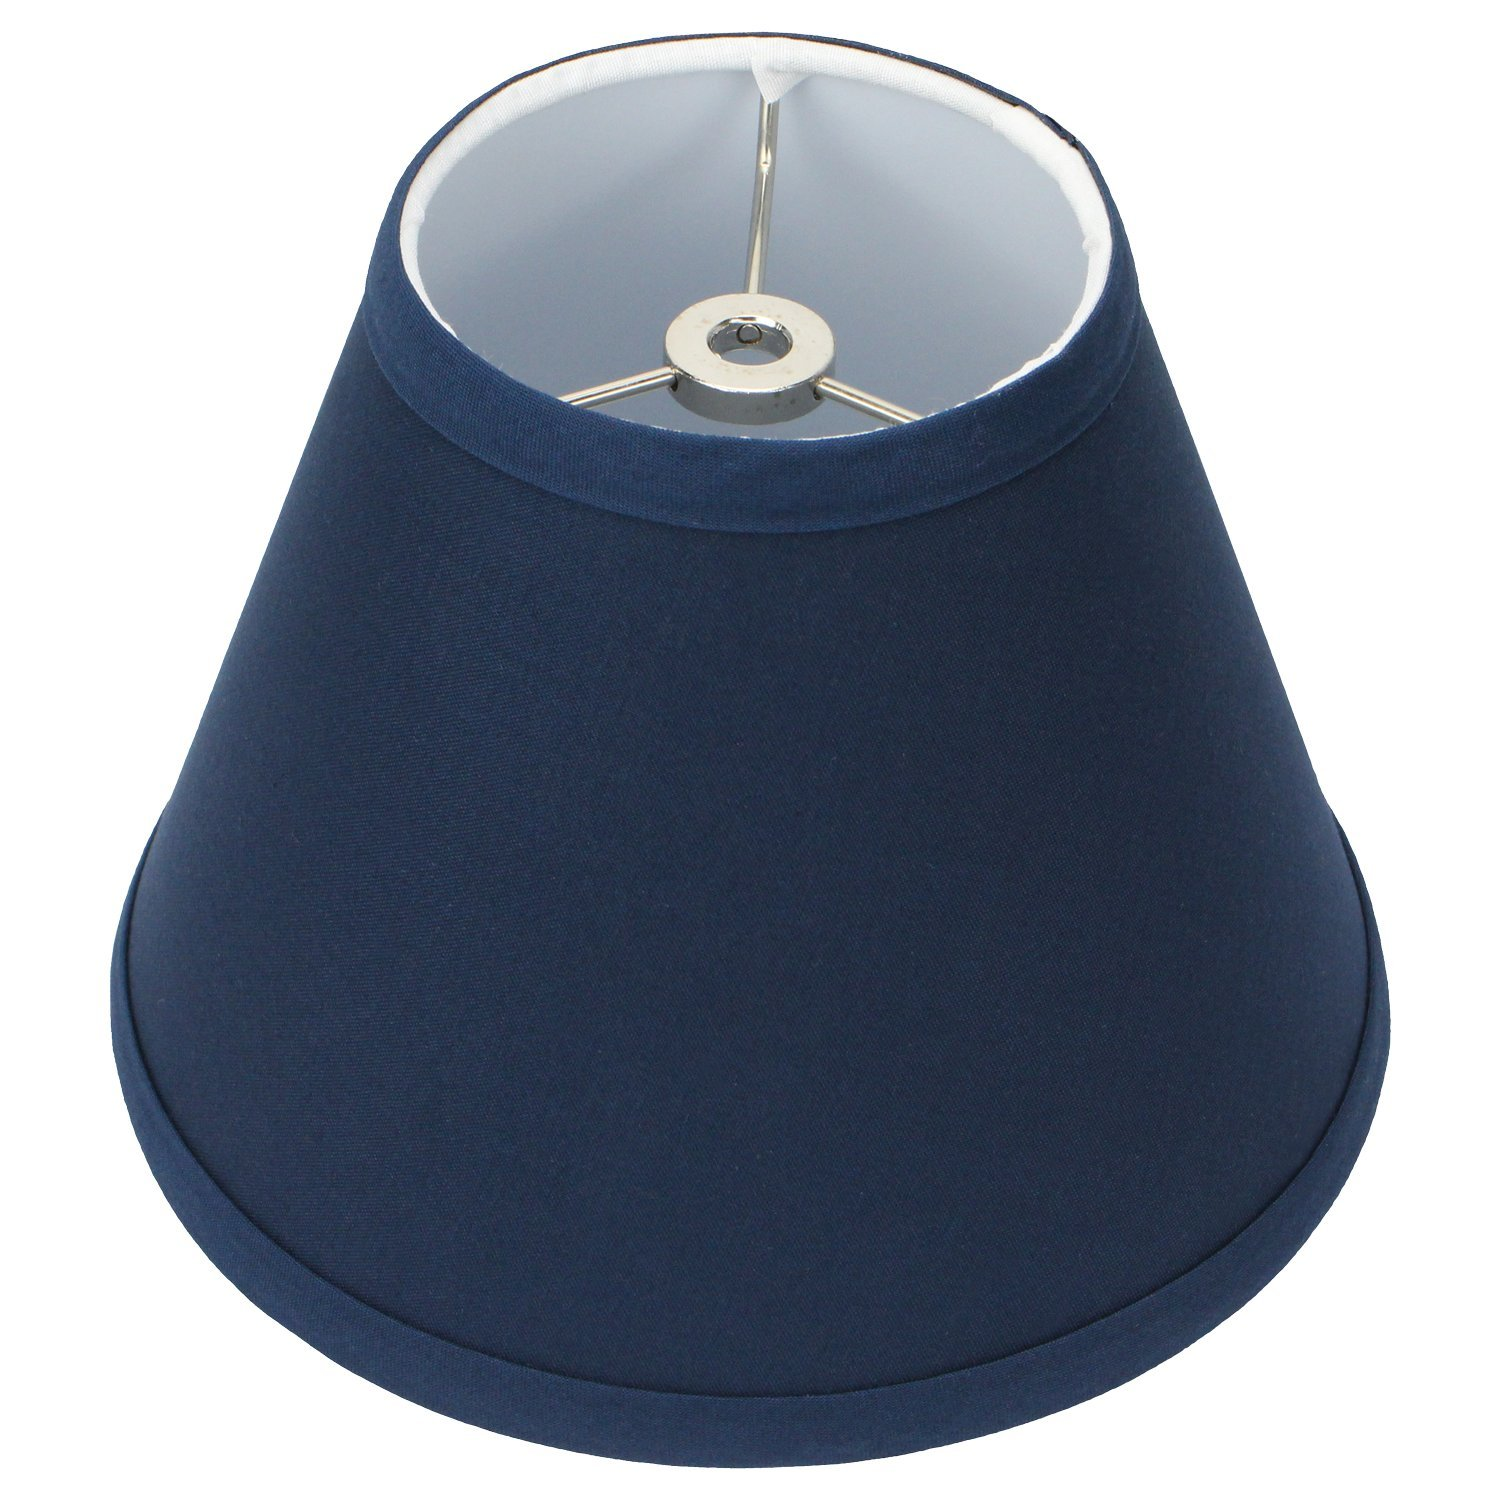 Cheap Navy Blue Lamp Shades find Navy Blue Lamp Shades deals on